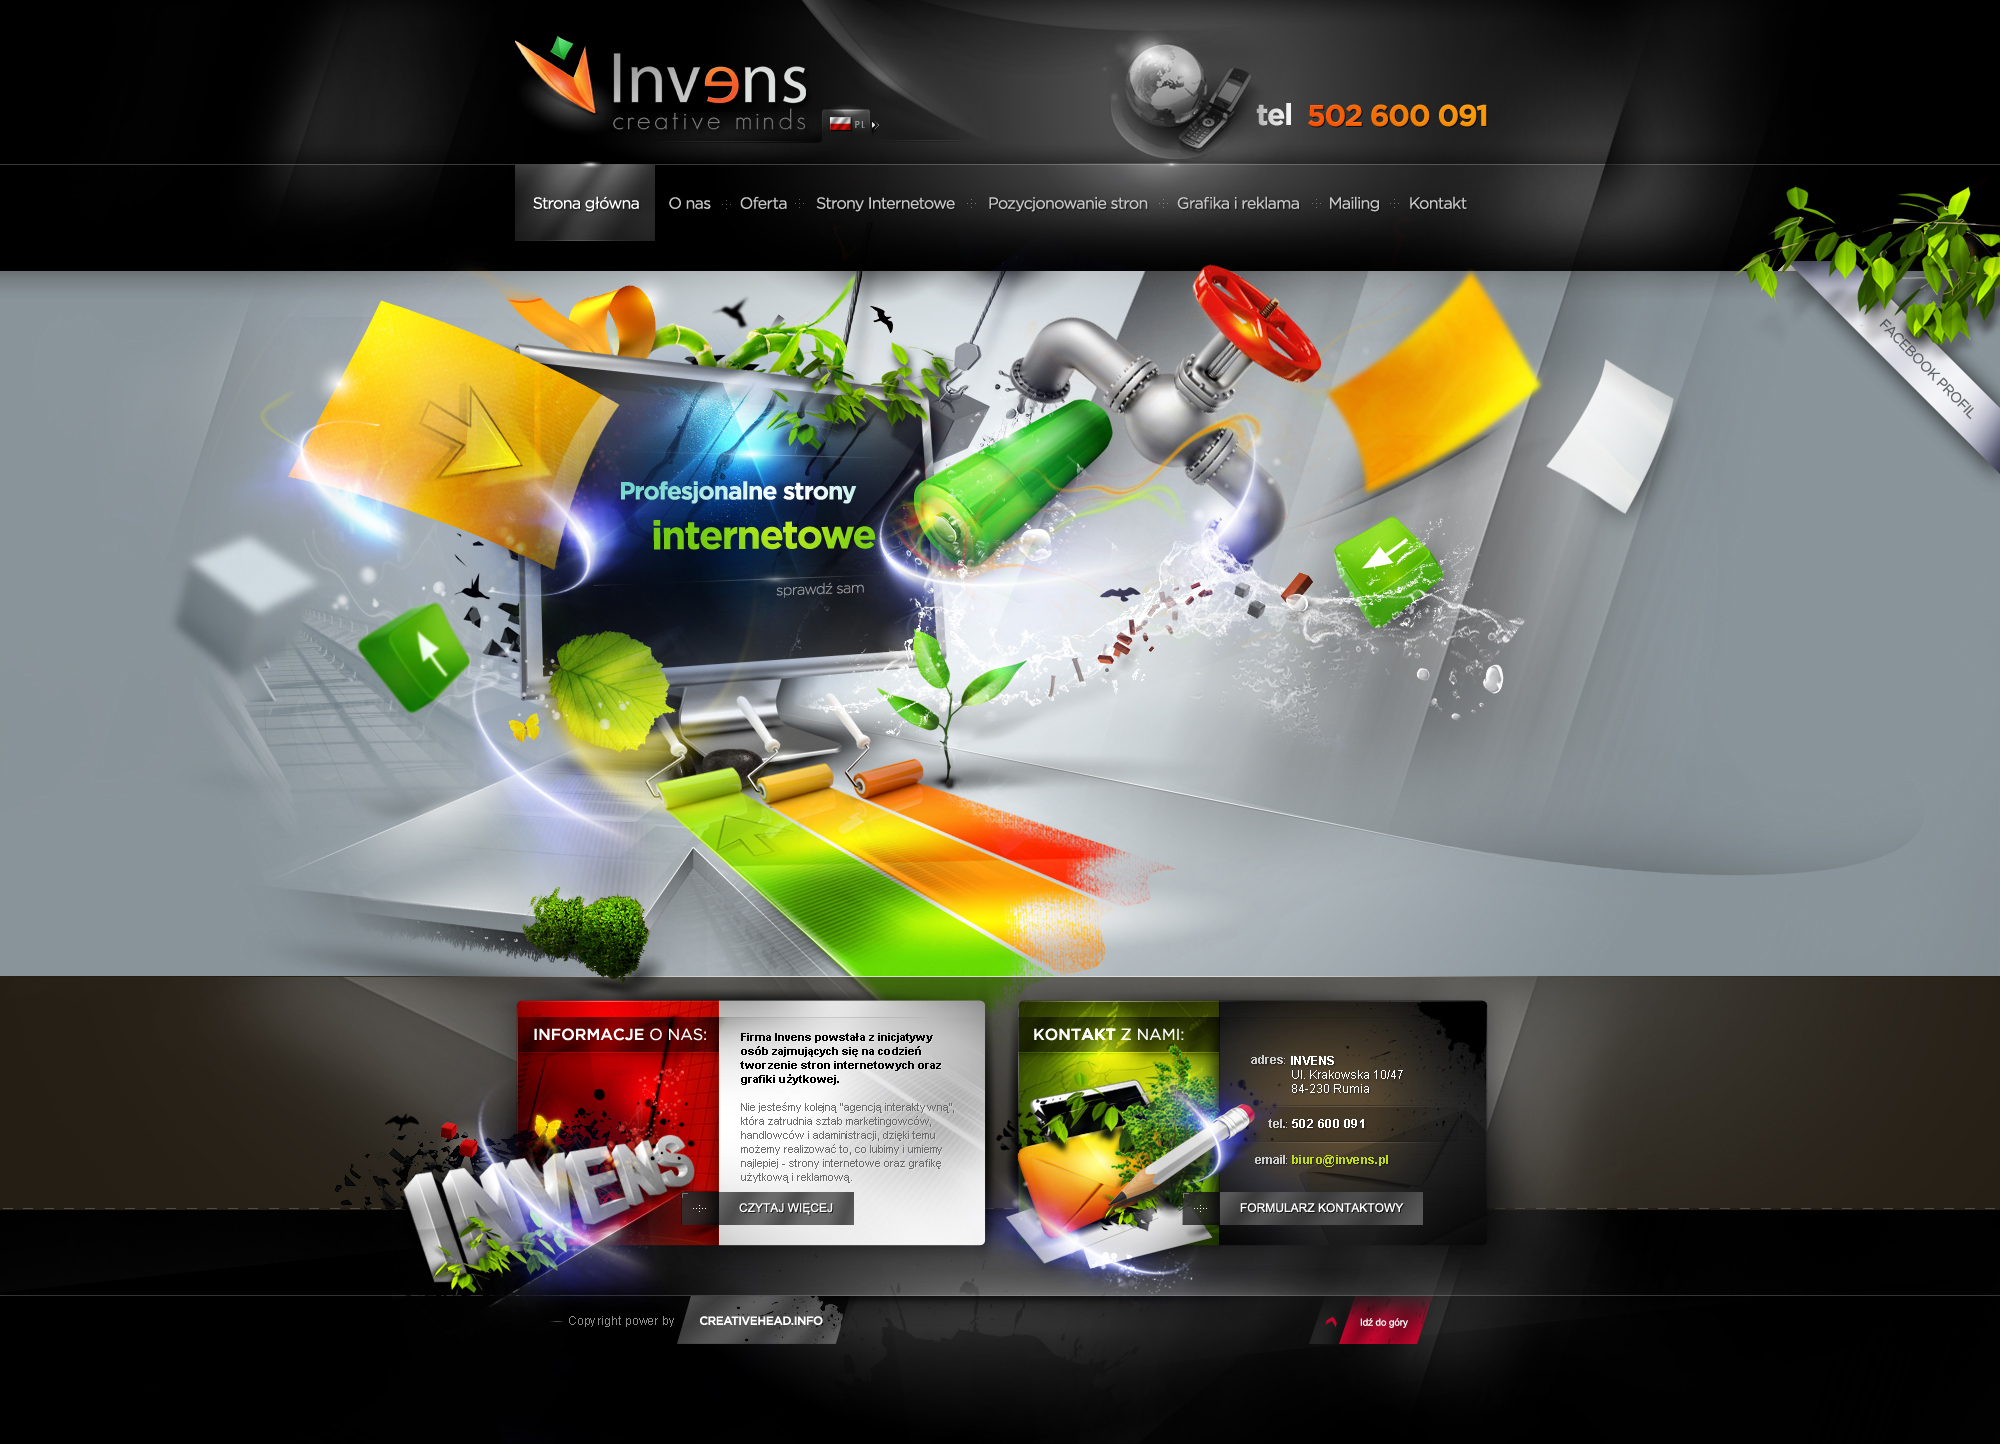 Invens.pl version2 by webdesigner1921